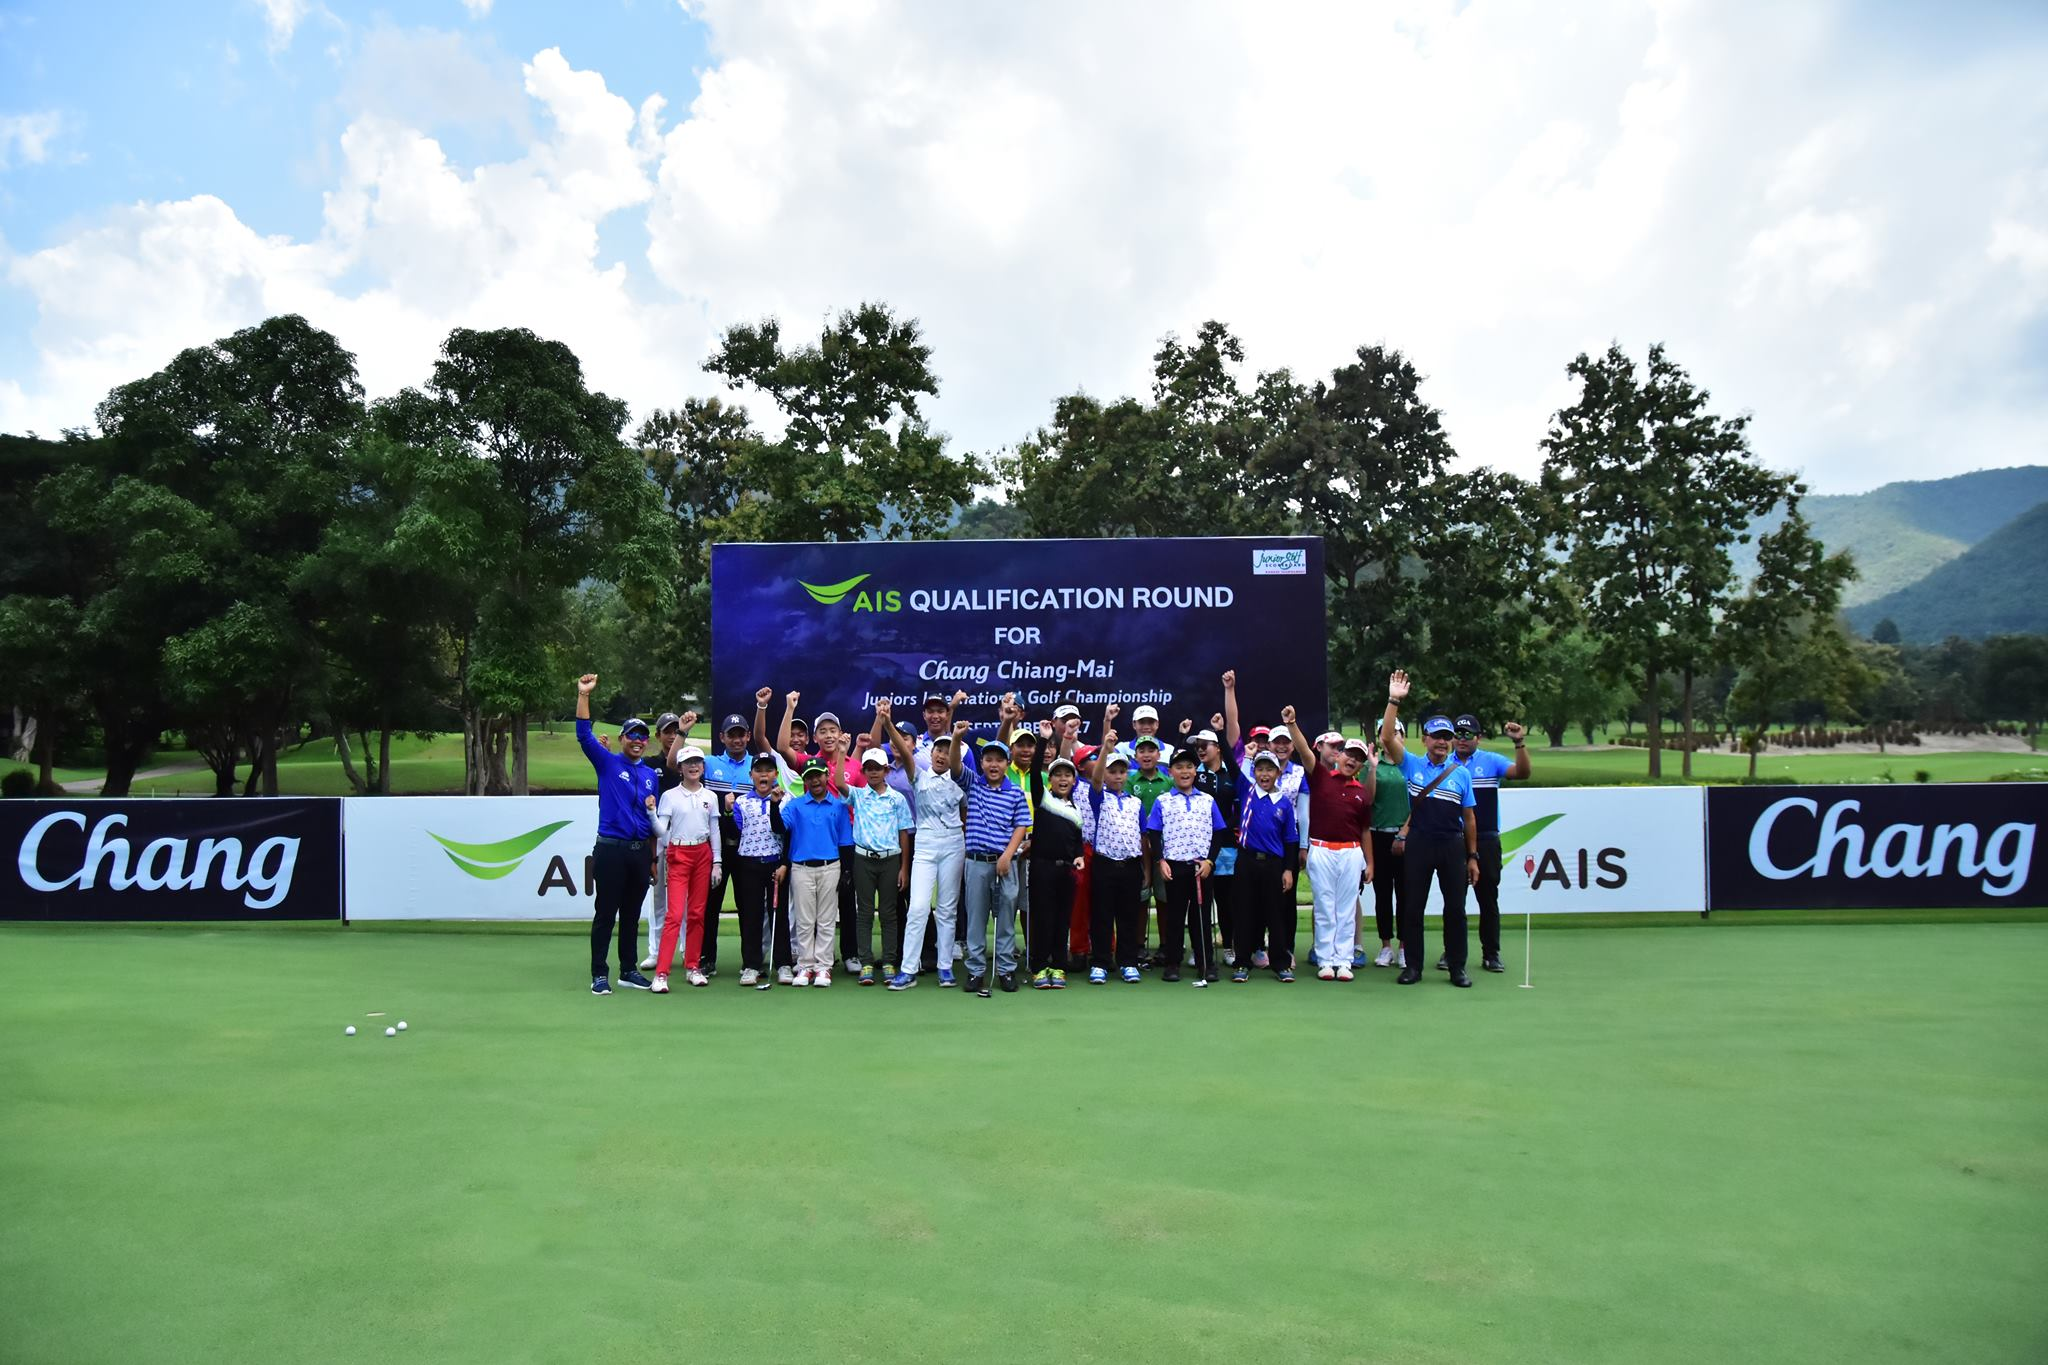 AIS Qualification Round For Chang Chiang-mai Juniors International Championship